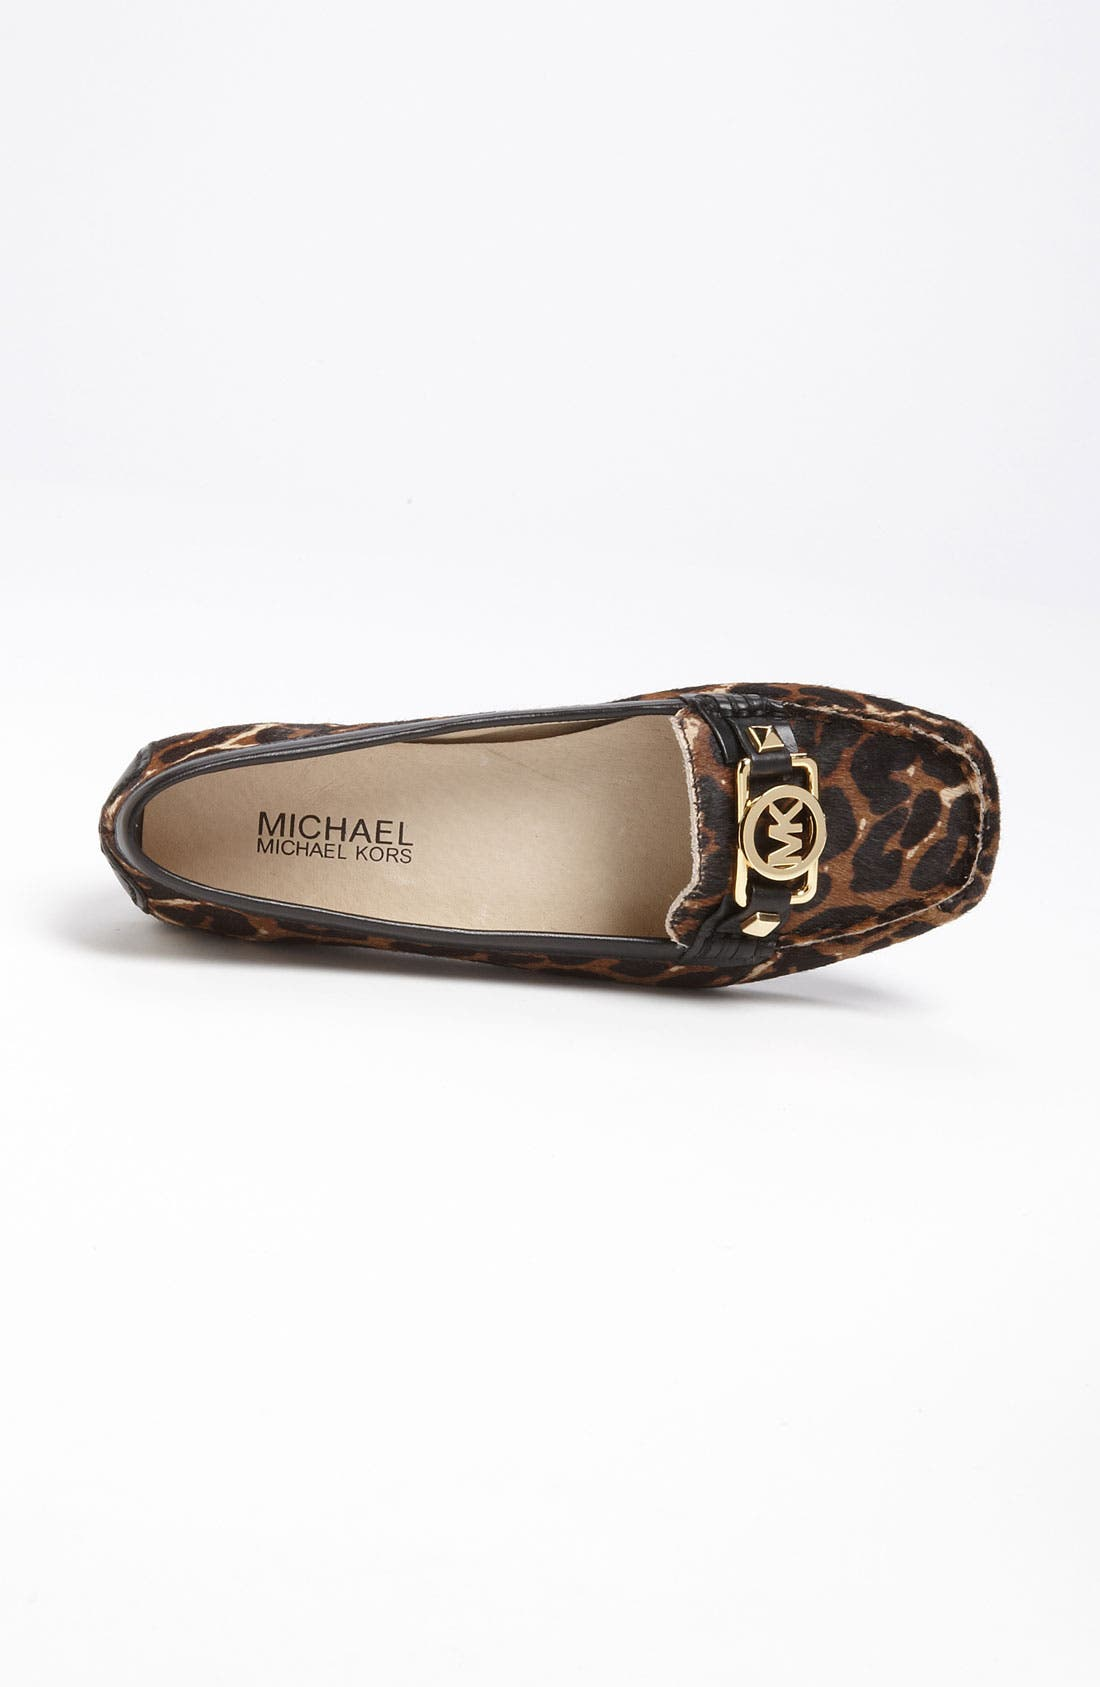 MICHAEL MICHAEL KORS,                             'Charm' Moccasin,                             Alternate thumbnail 2, color,                             200